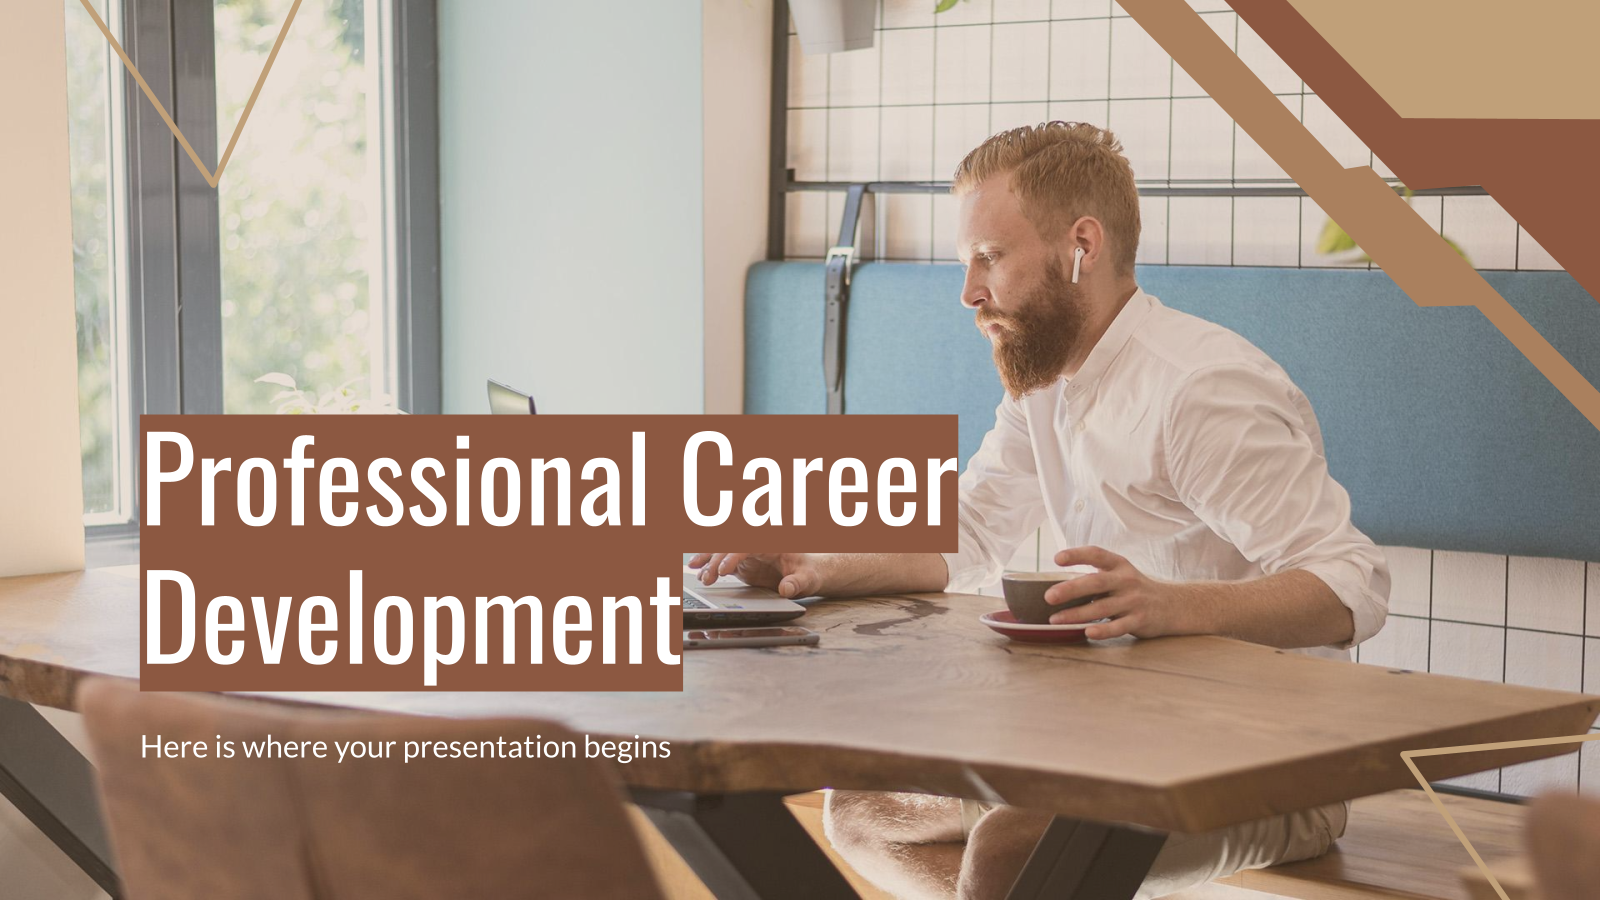 Professional Career Development presentation template